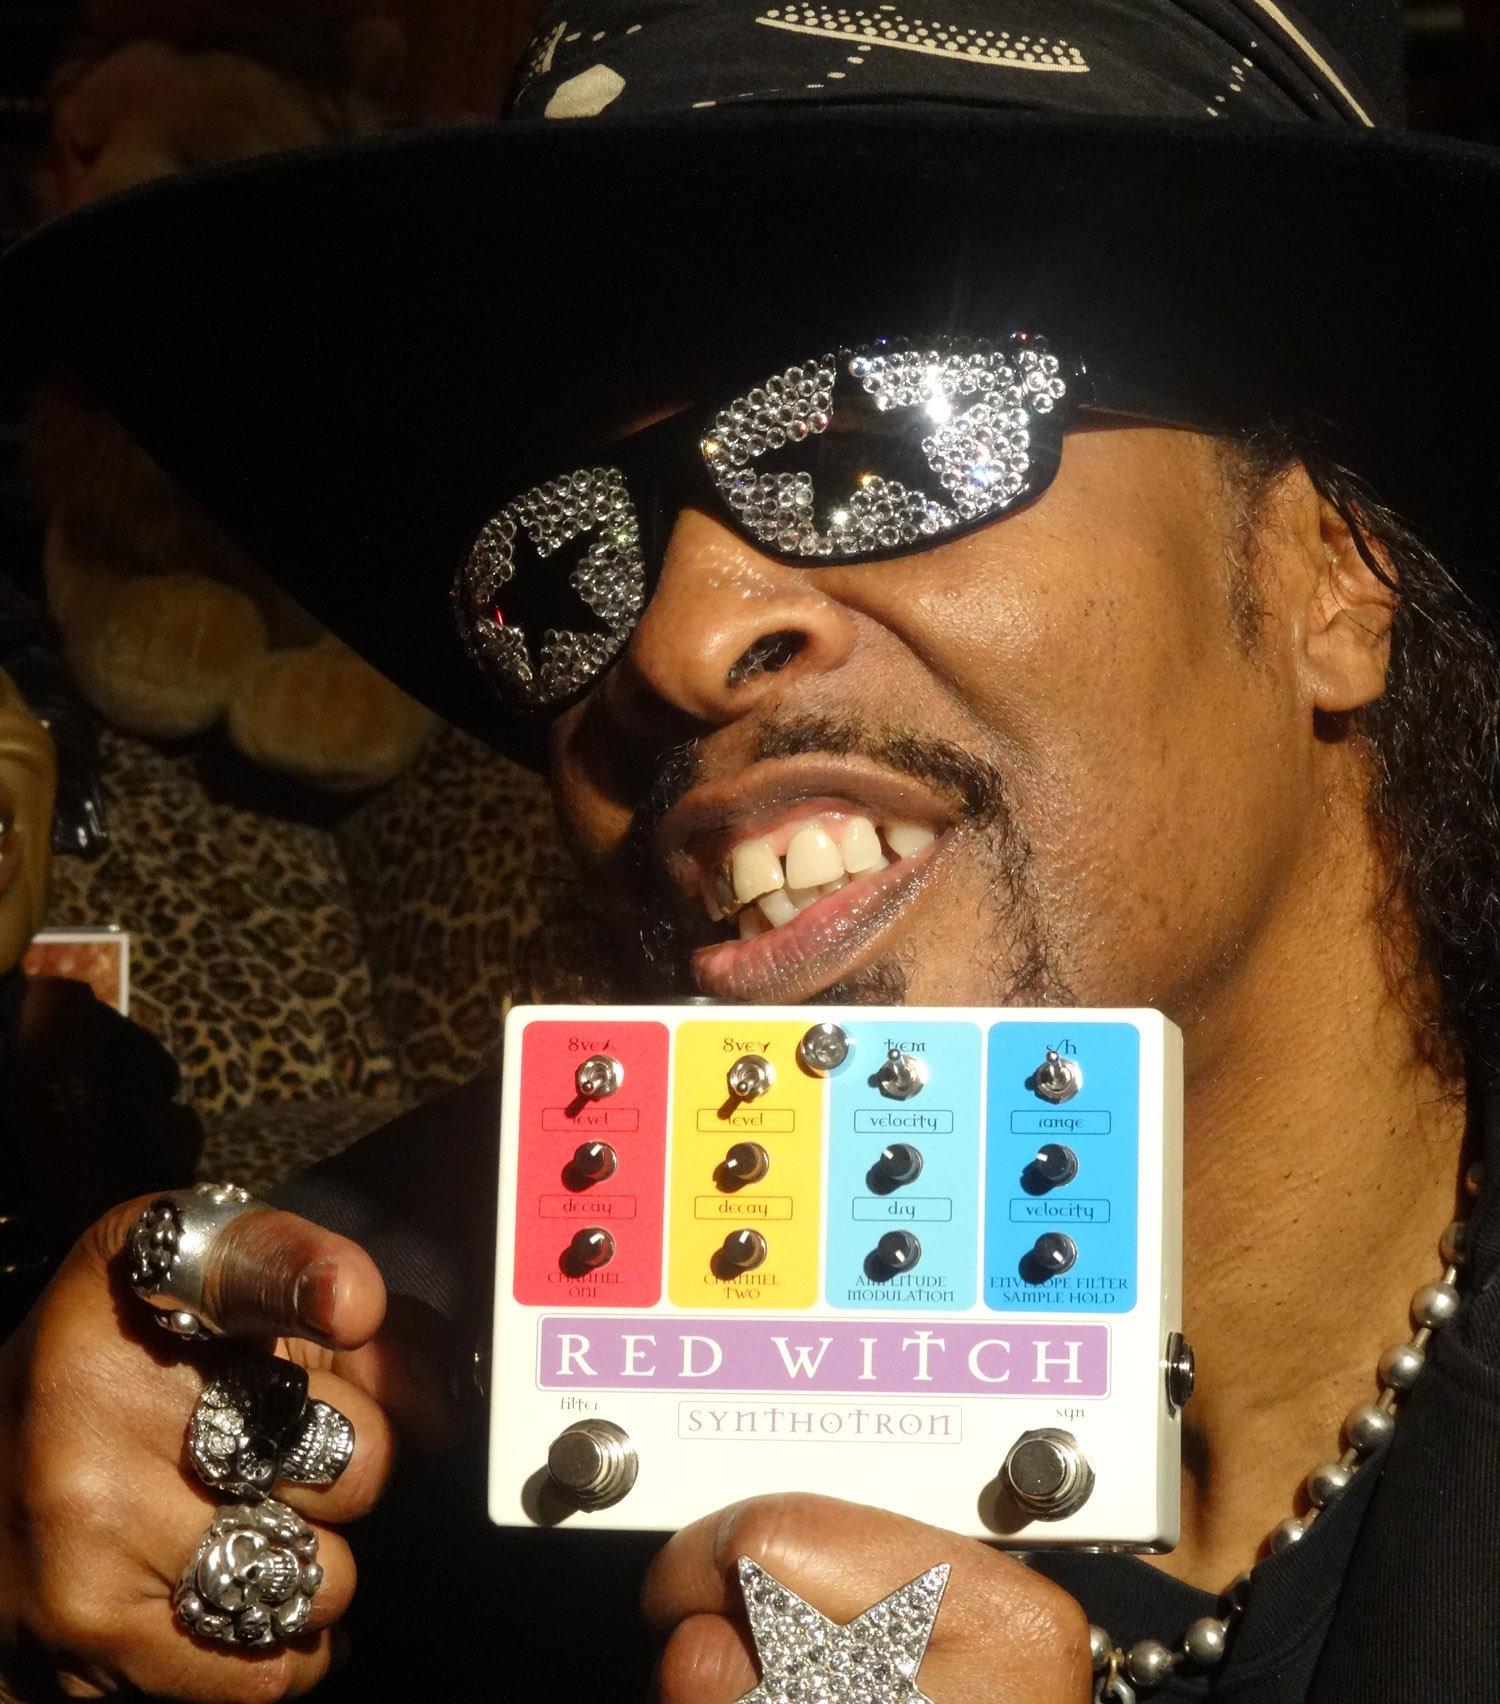 Bootsy Collins<br><font size=1>Bootsy's Rubber Band, James Brown, Funkadelic</font>